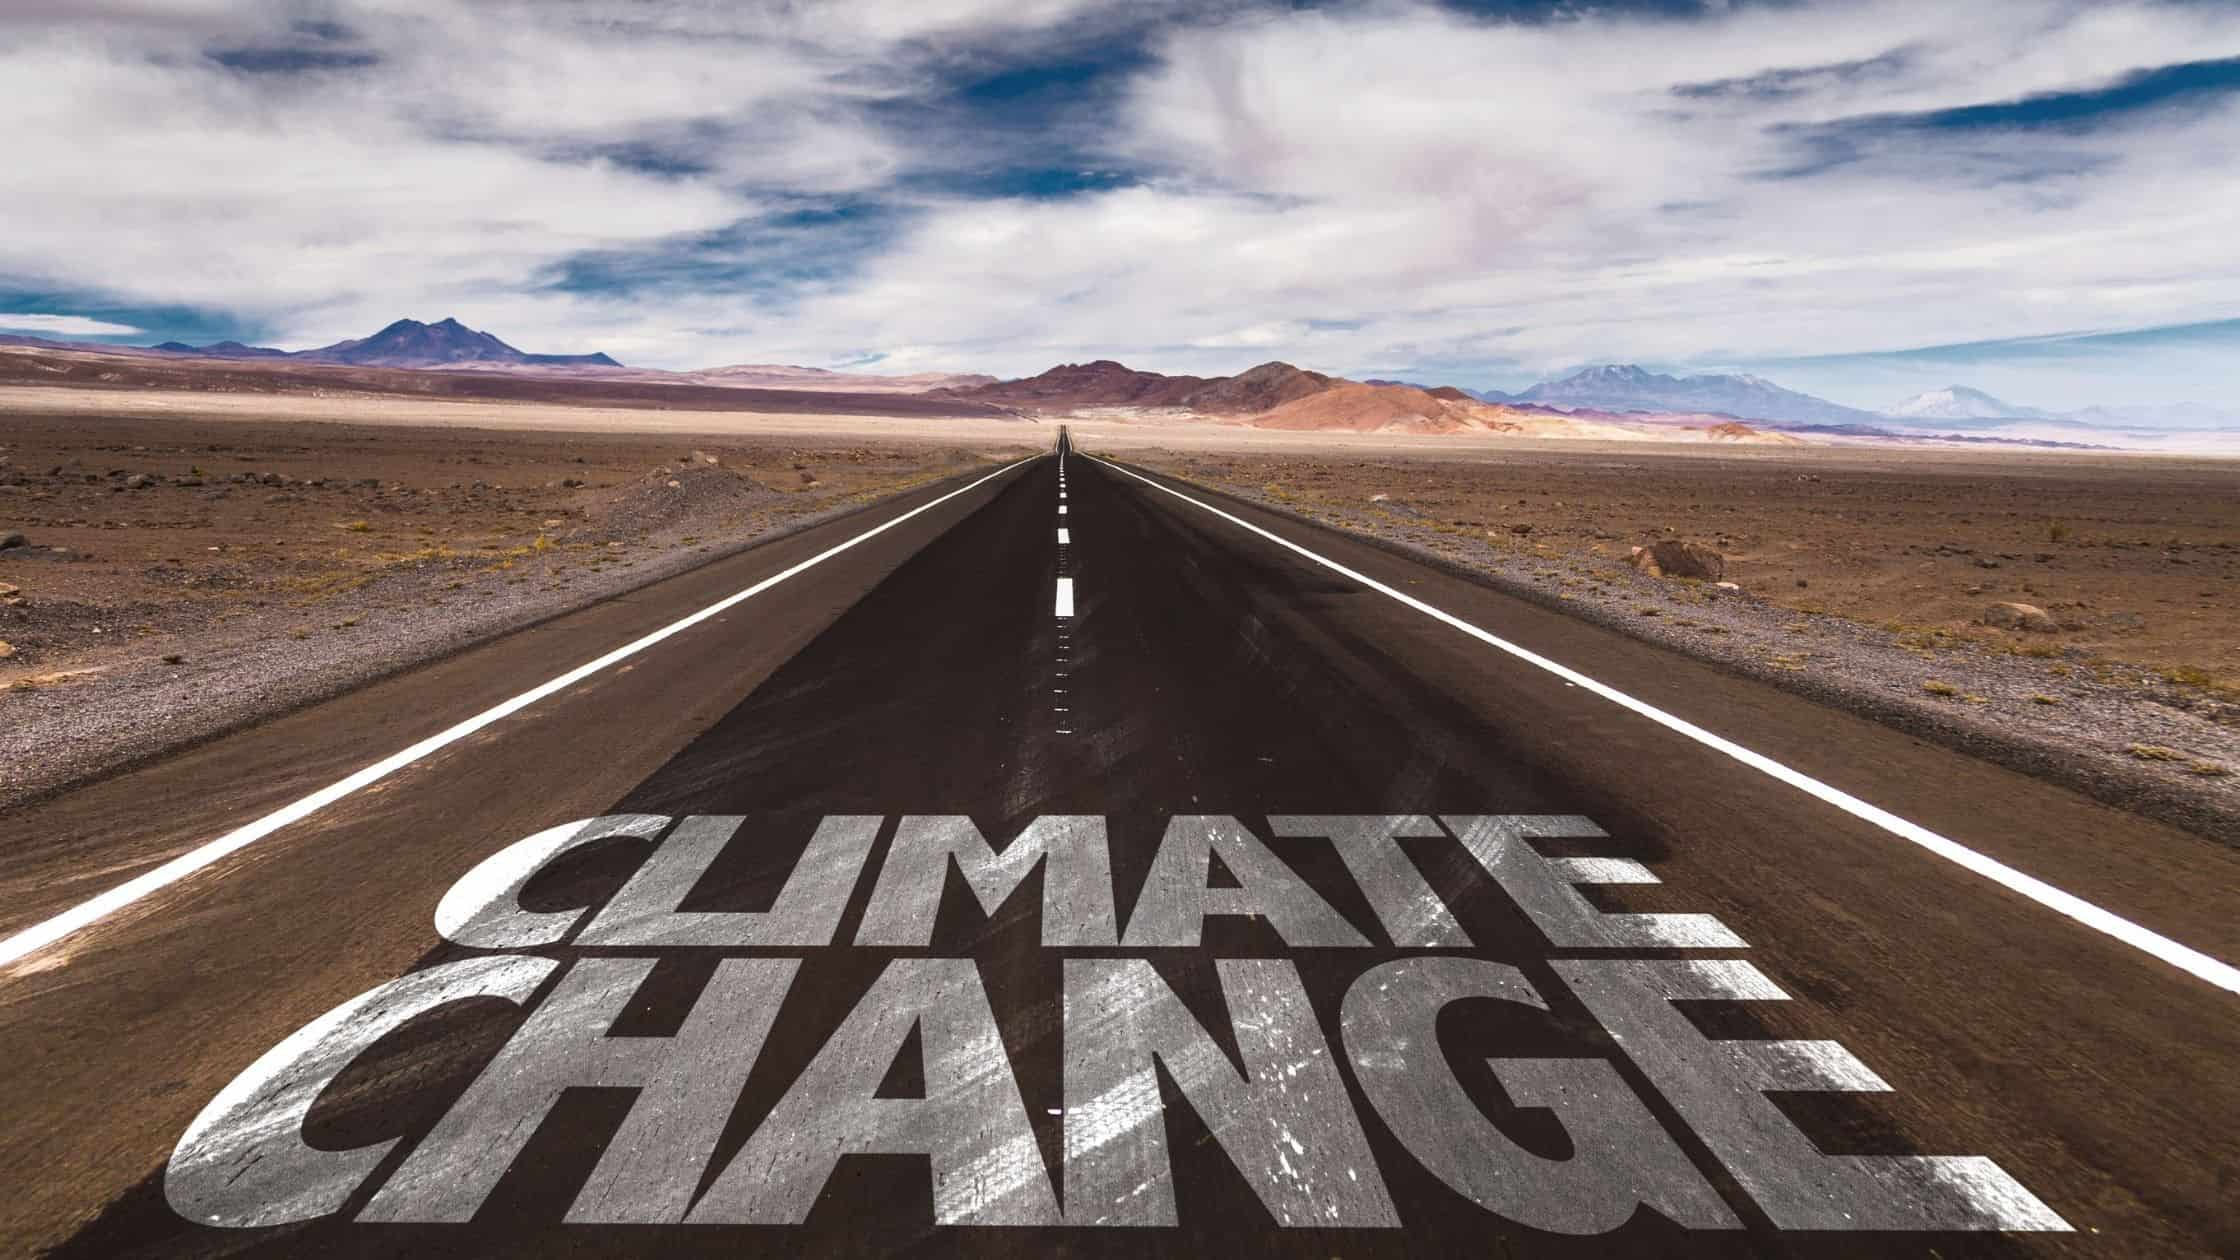 Cash for Clunkers and Climate Change